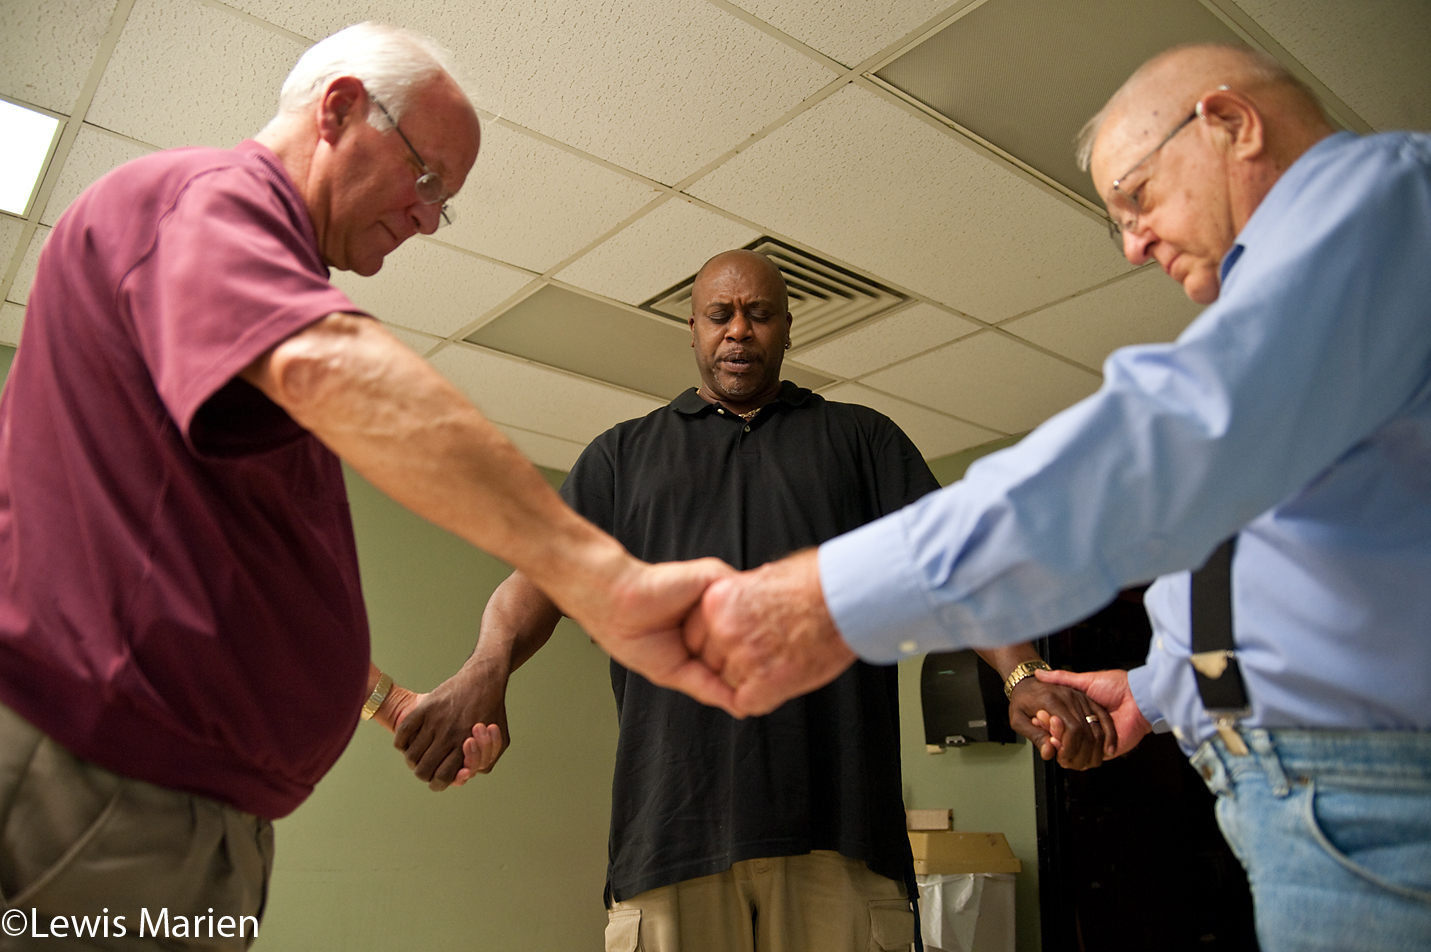 From left to right, Bob Clark, Greg Vickers Sr., and Roy Ewalt, all of Galesburg, Ill., pray at the conclusion of the first Bible study class on Sept. 14 at the Knox County YMCA in Galesburg, Ill.